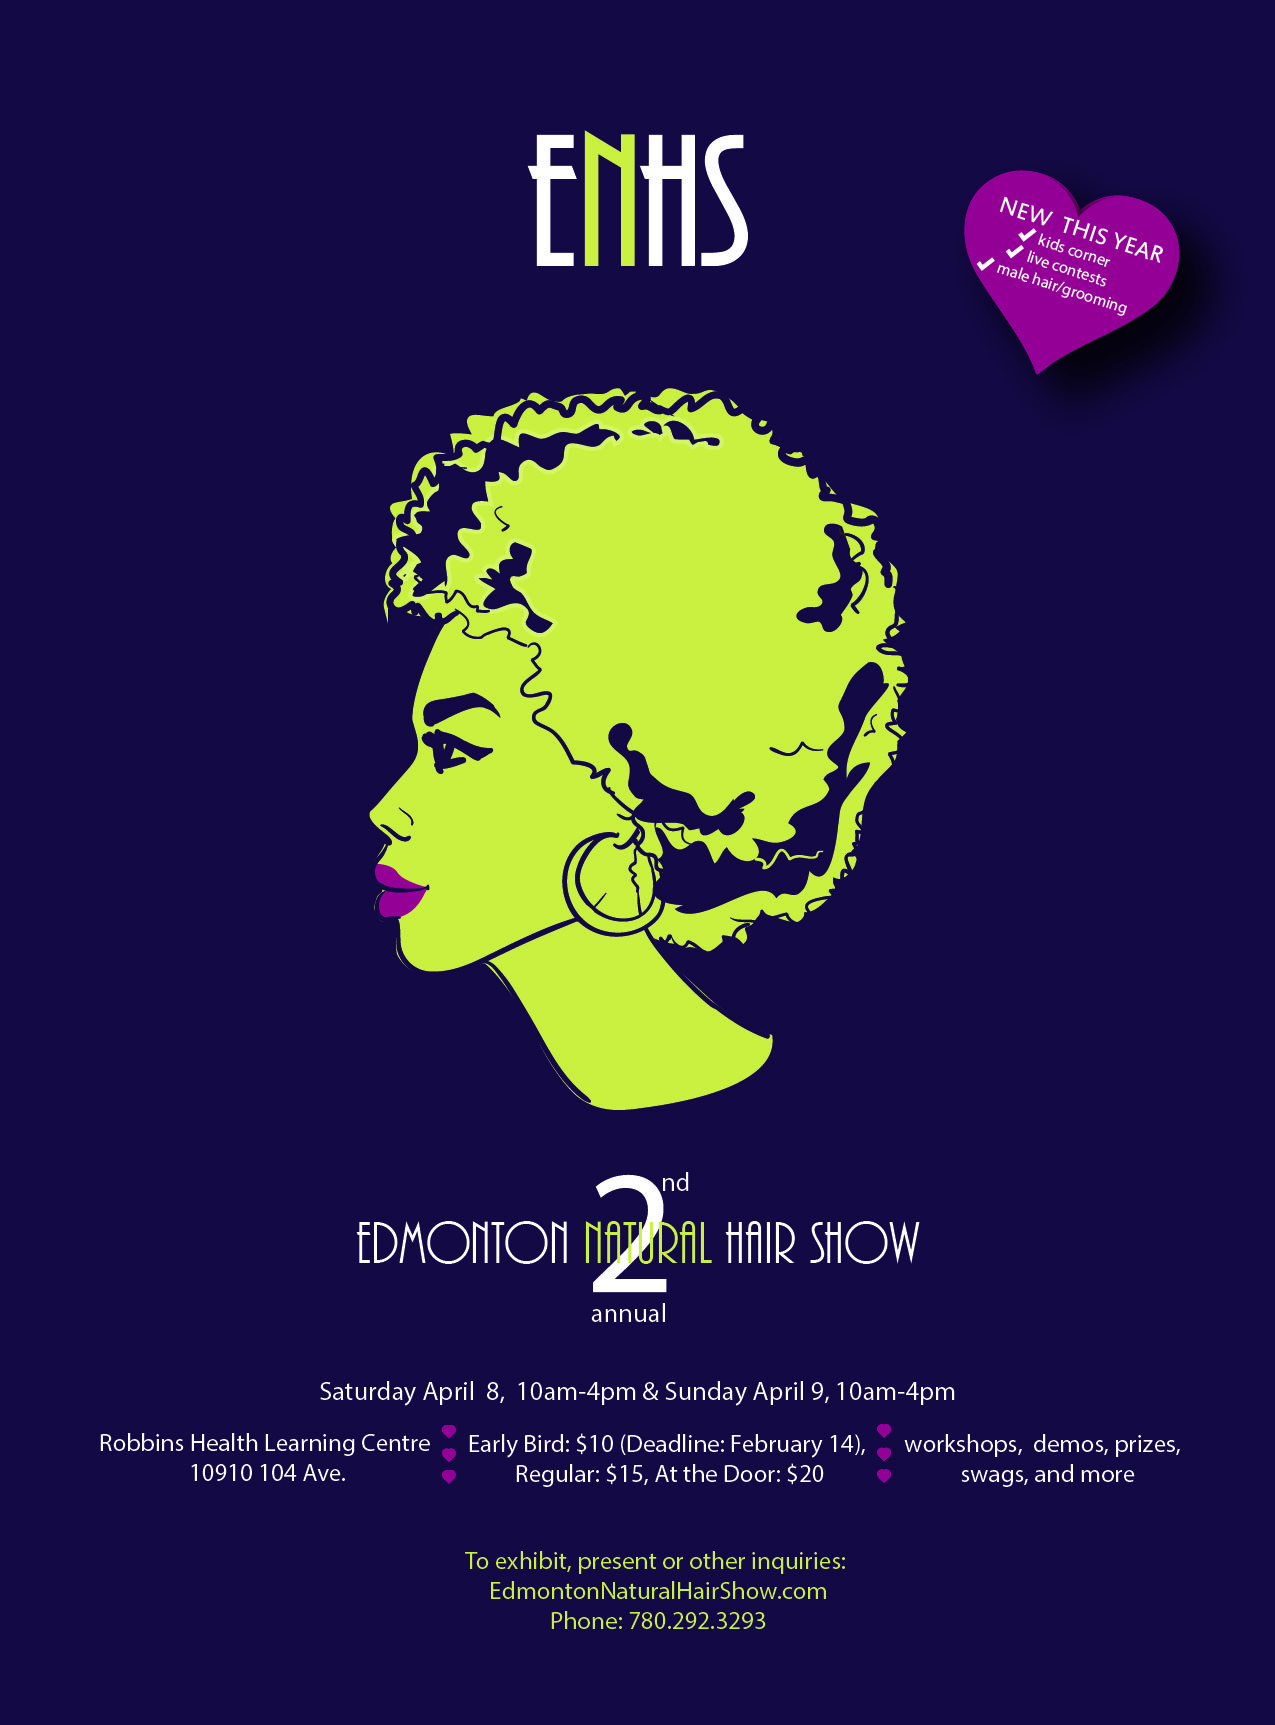 2nd Annual Edmonton Natural Hair Show_April 8-9_2017